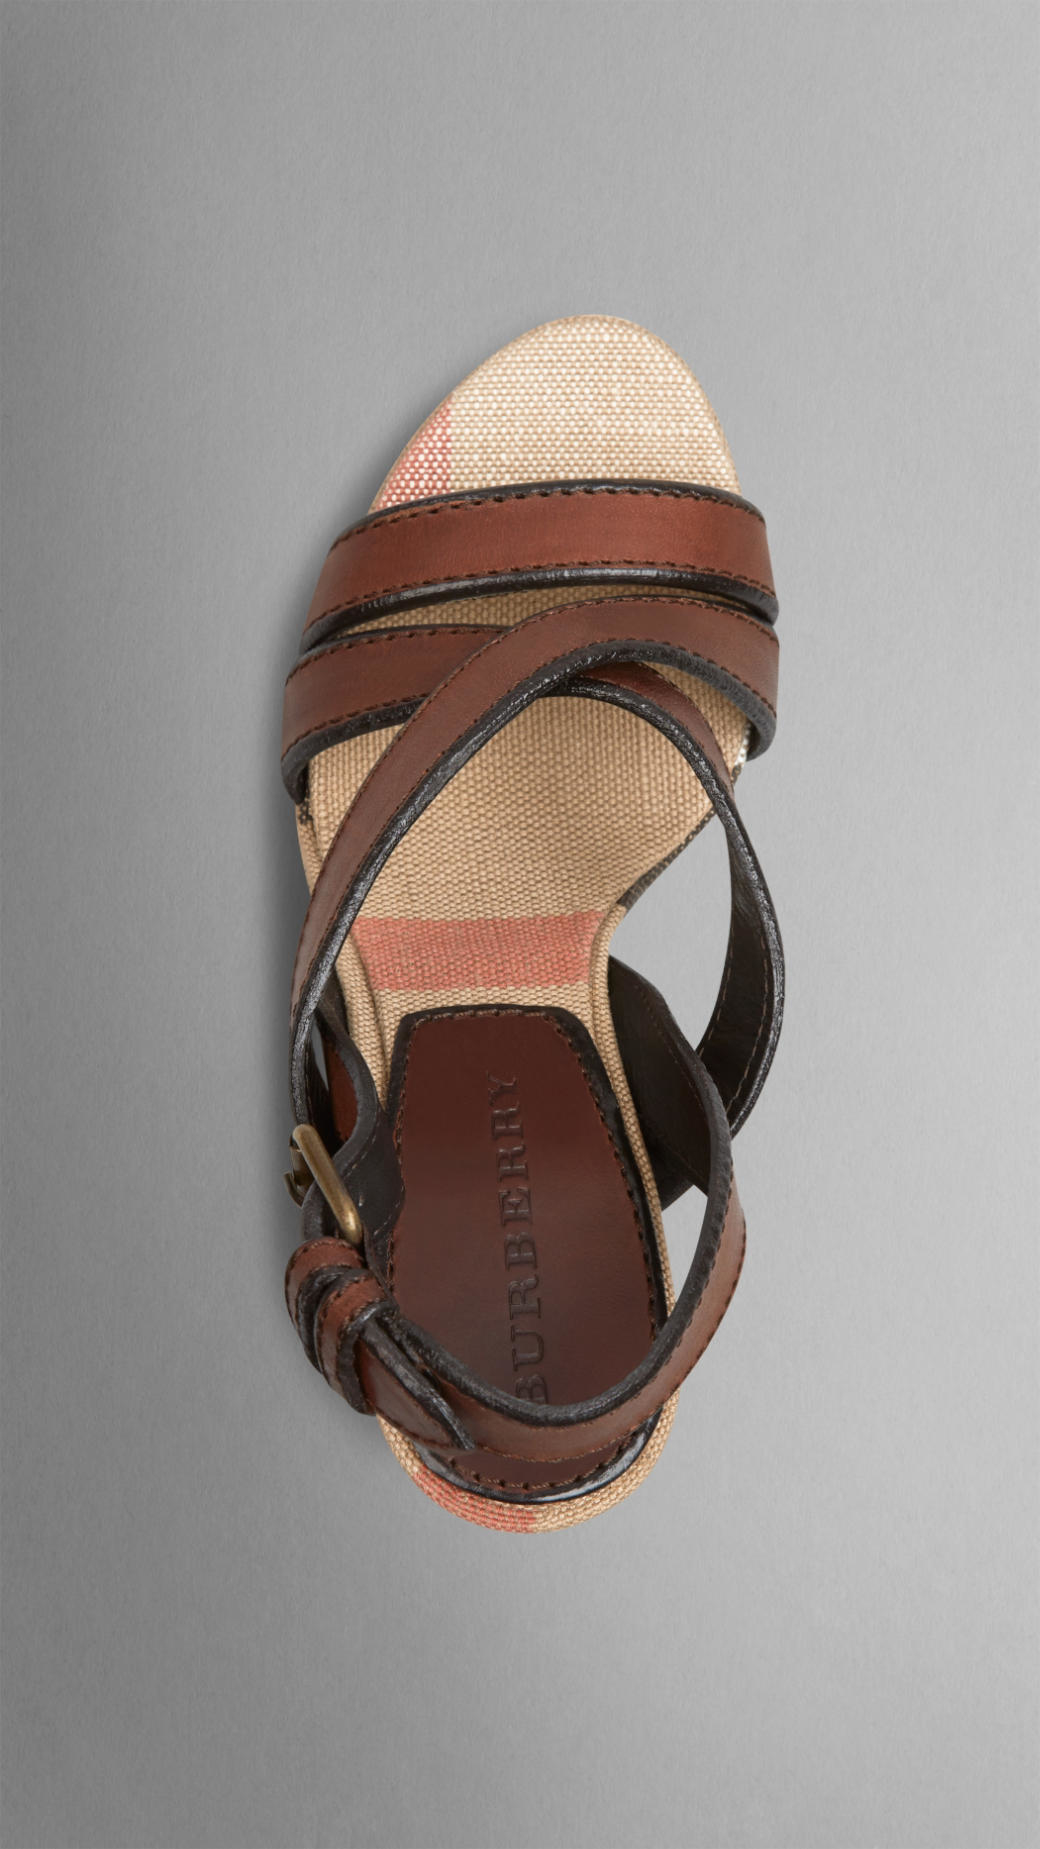 e8dd3dd35c61 Lyst - Burberry Canvas Check Leather Platform Wedges in Brown